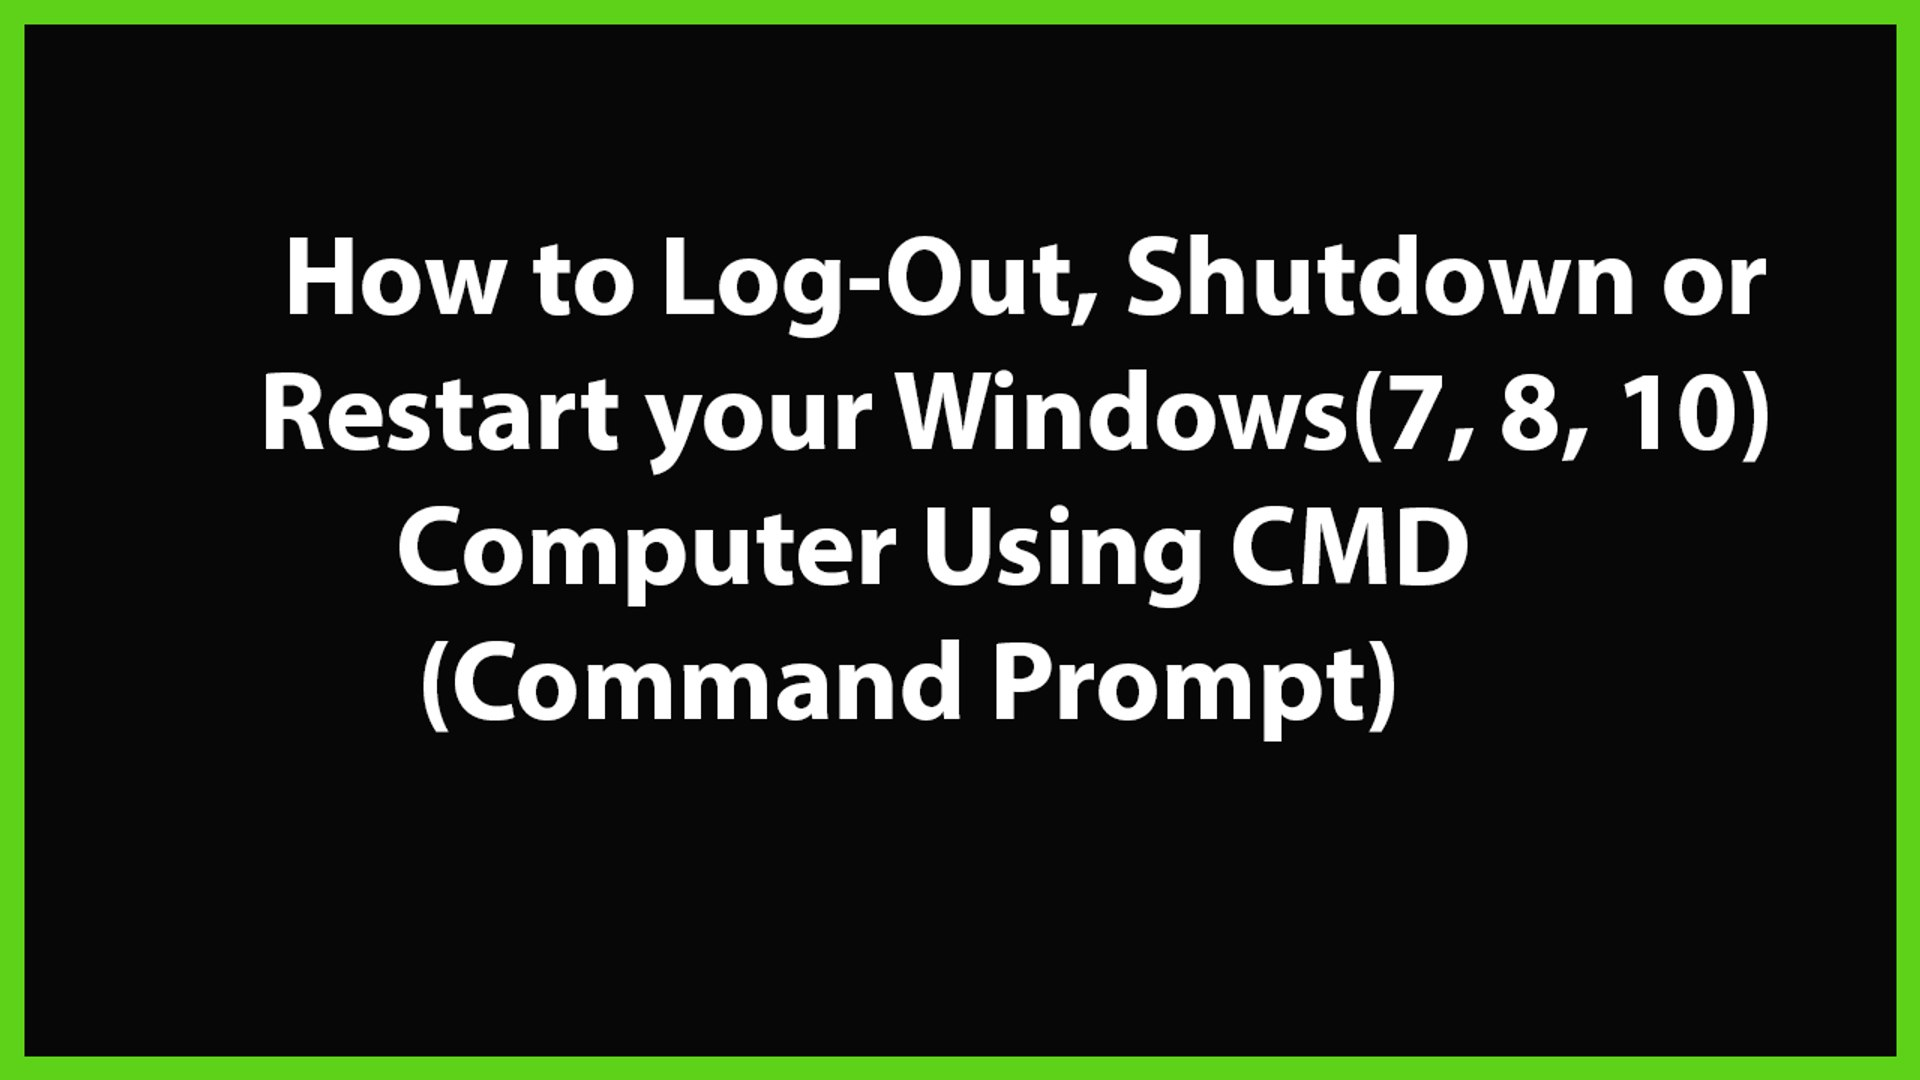 How to Log Out, Shutdown or Restart your Windows(7, 8,10) Computer using  CMD(Command Prompt)